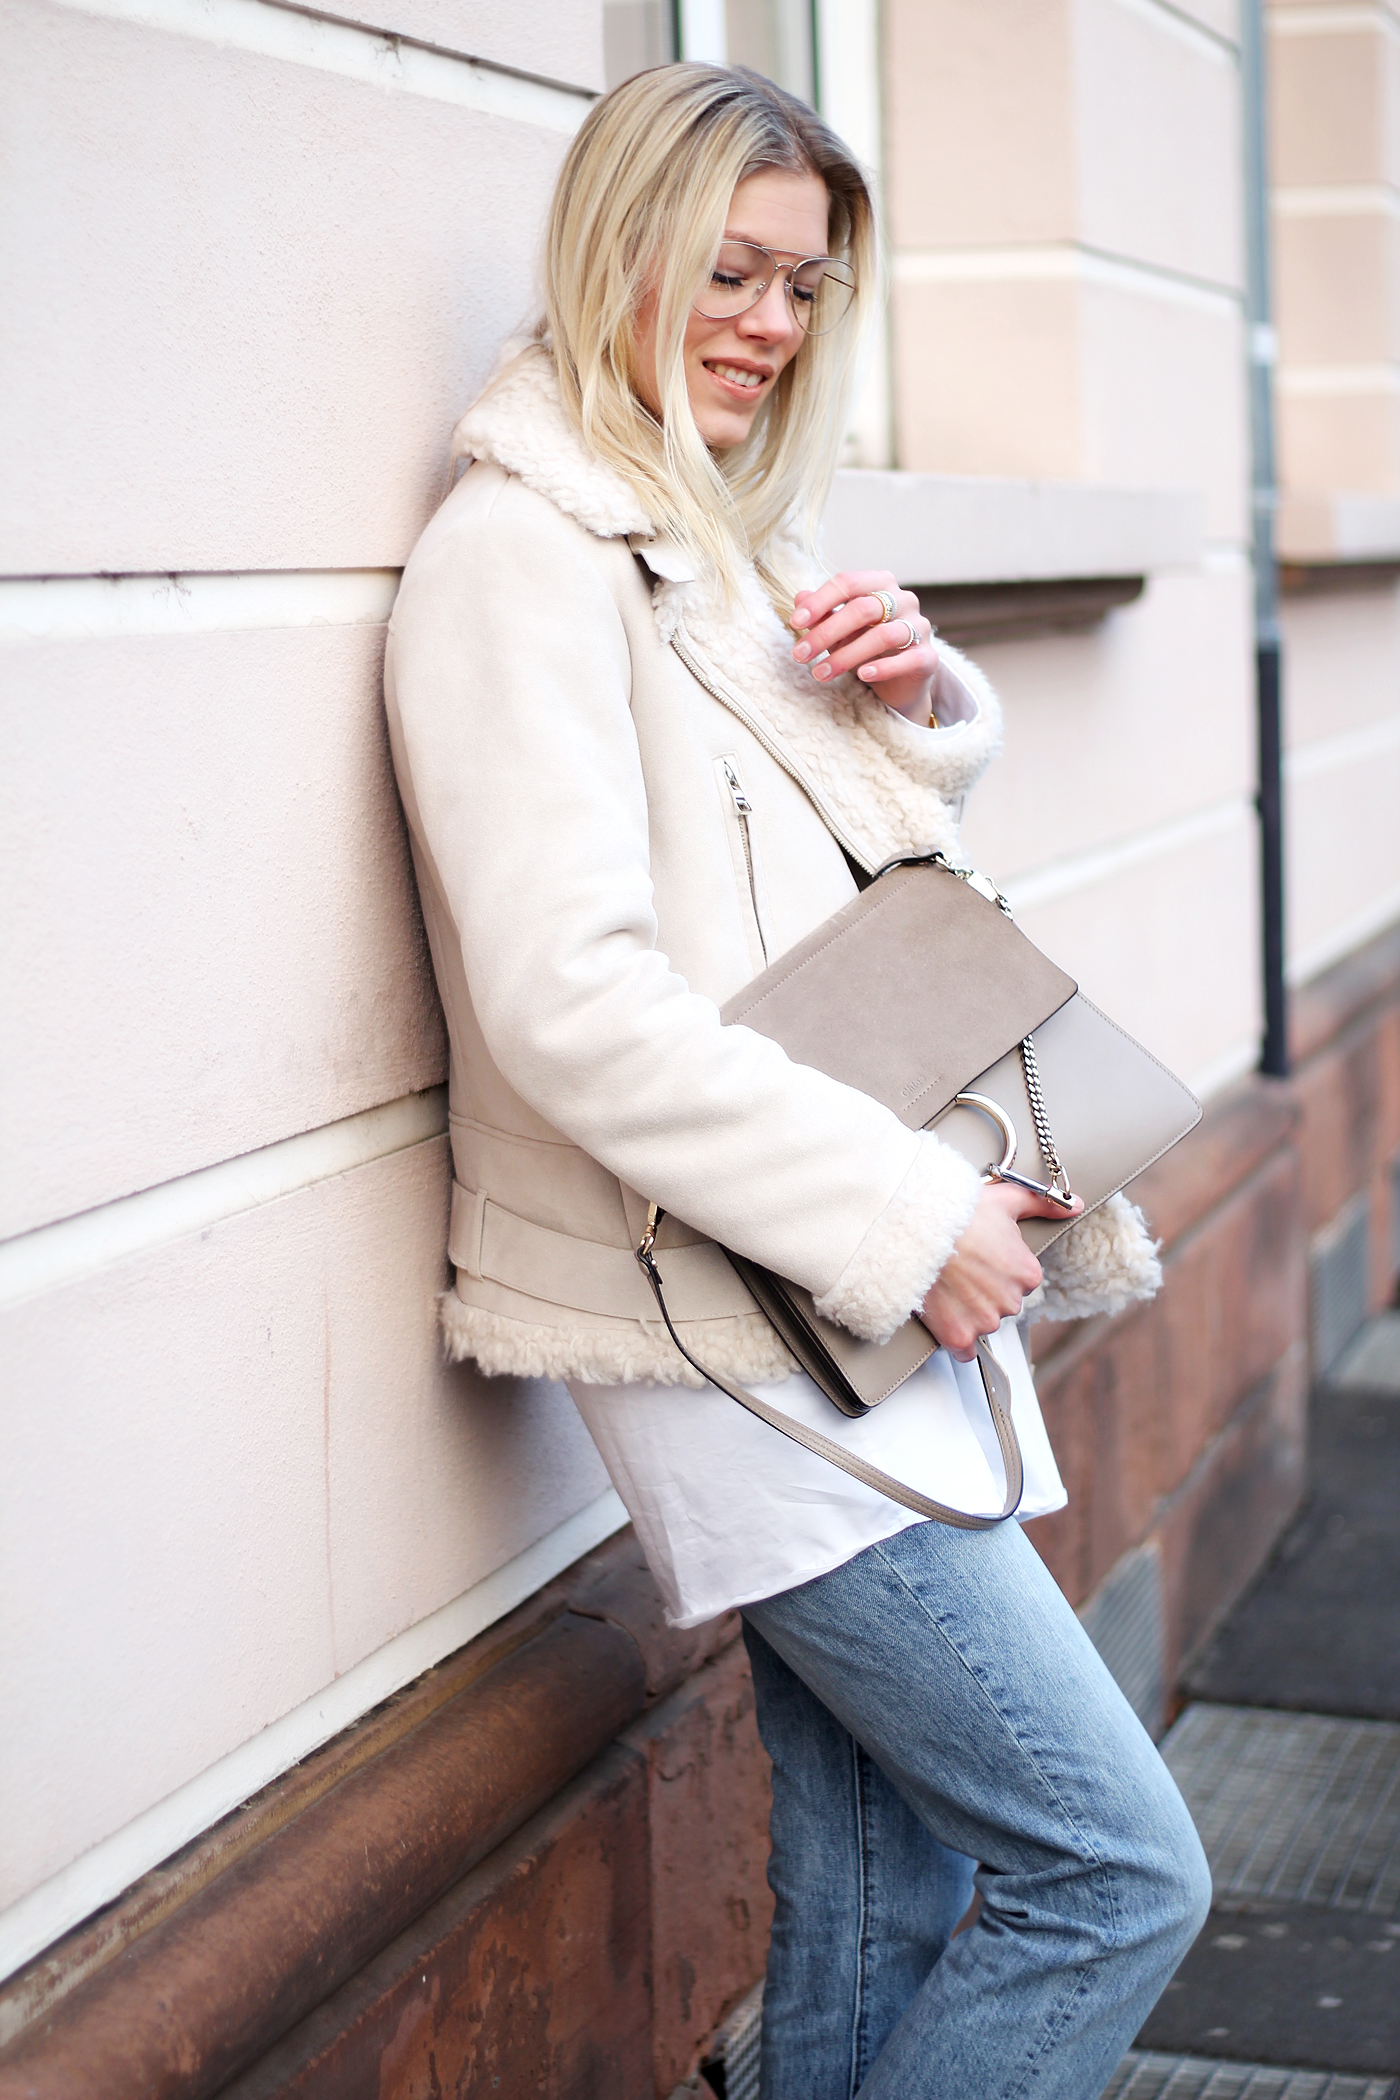 somehappyshoes_Fashionblog_shearling_jacket_H&M_Brille_Mom_Jeans_Sneaker